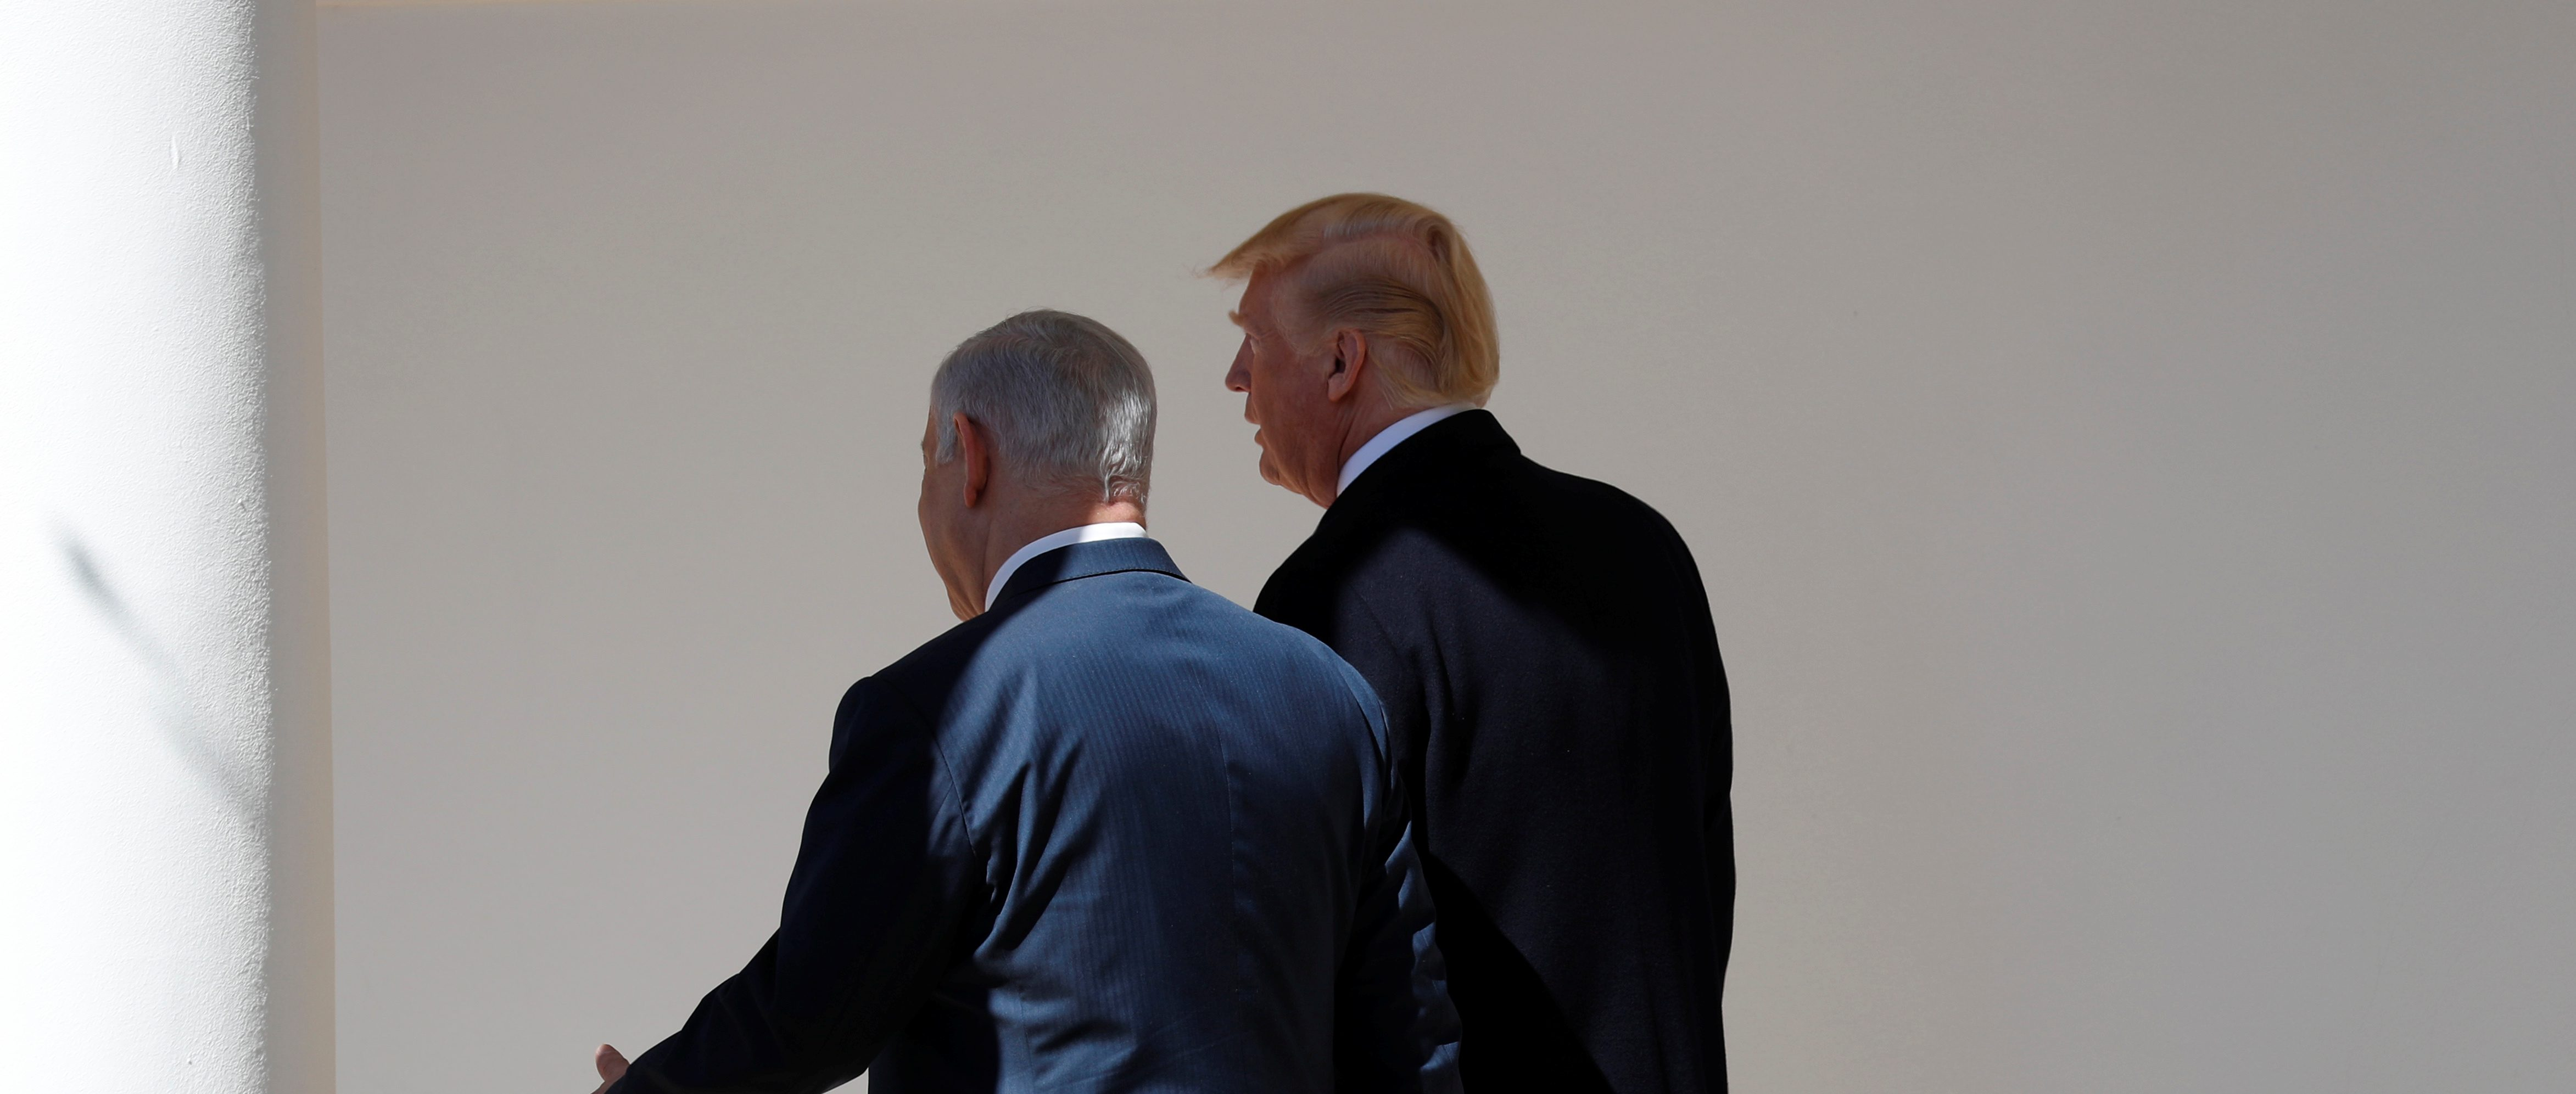 Israel and Trump are at odds on Syria